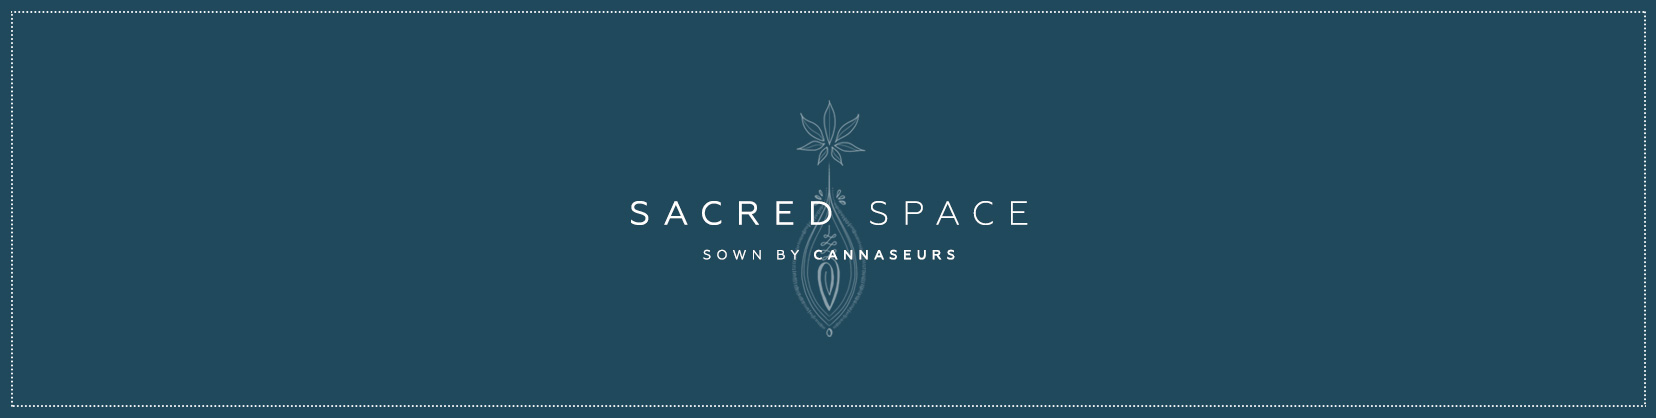 Sacred-Space-Sown-By-Cannaseurs